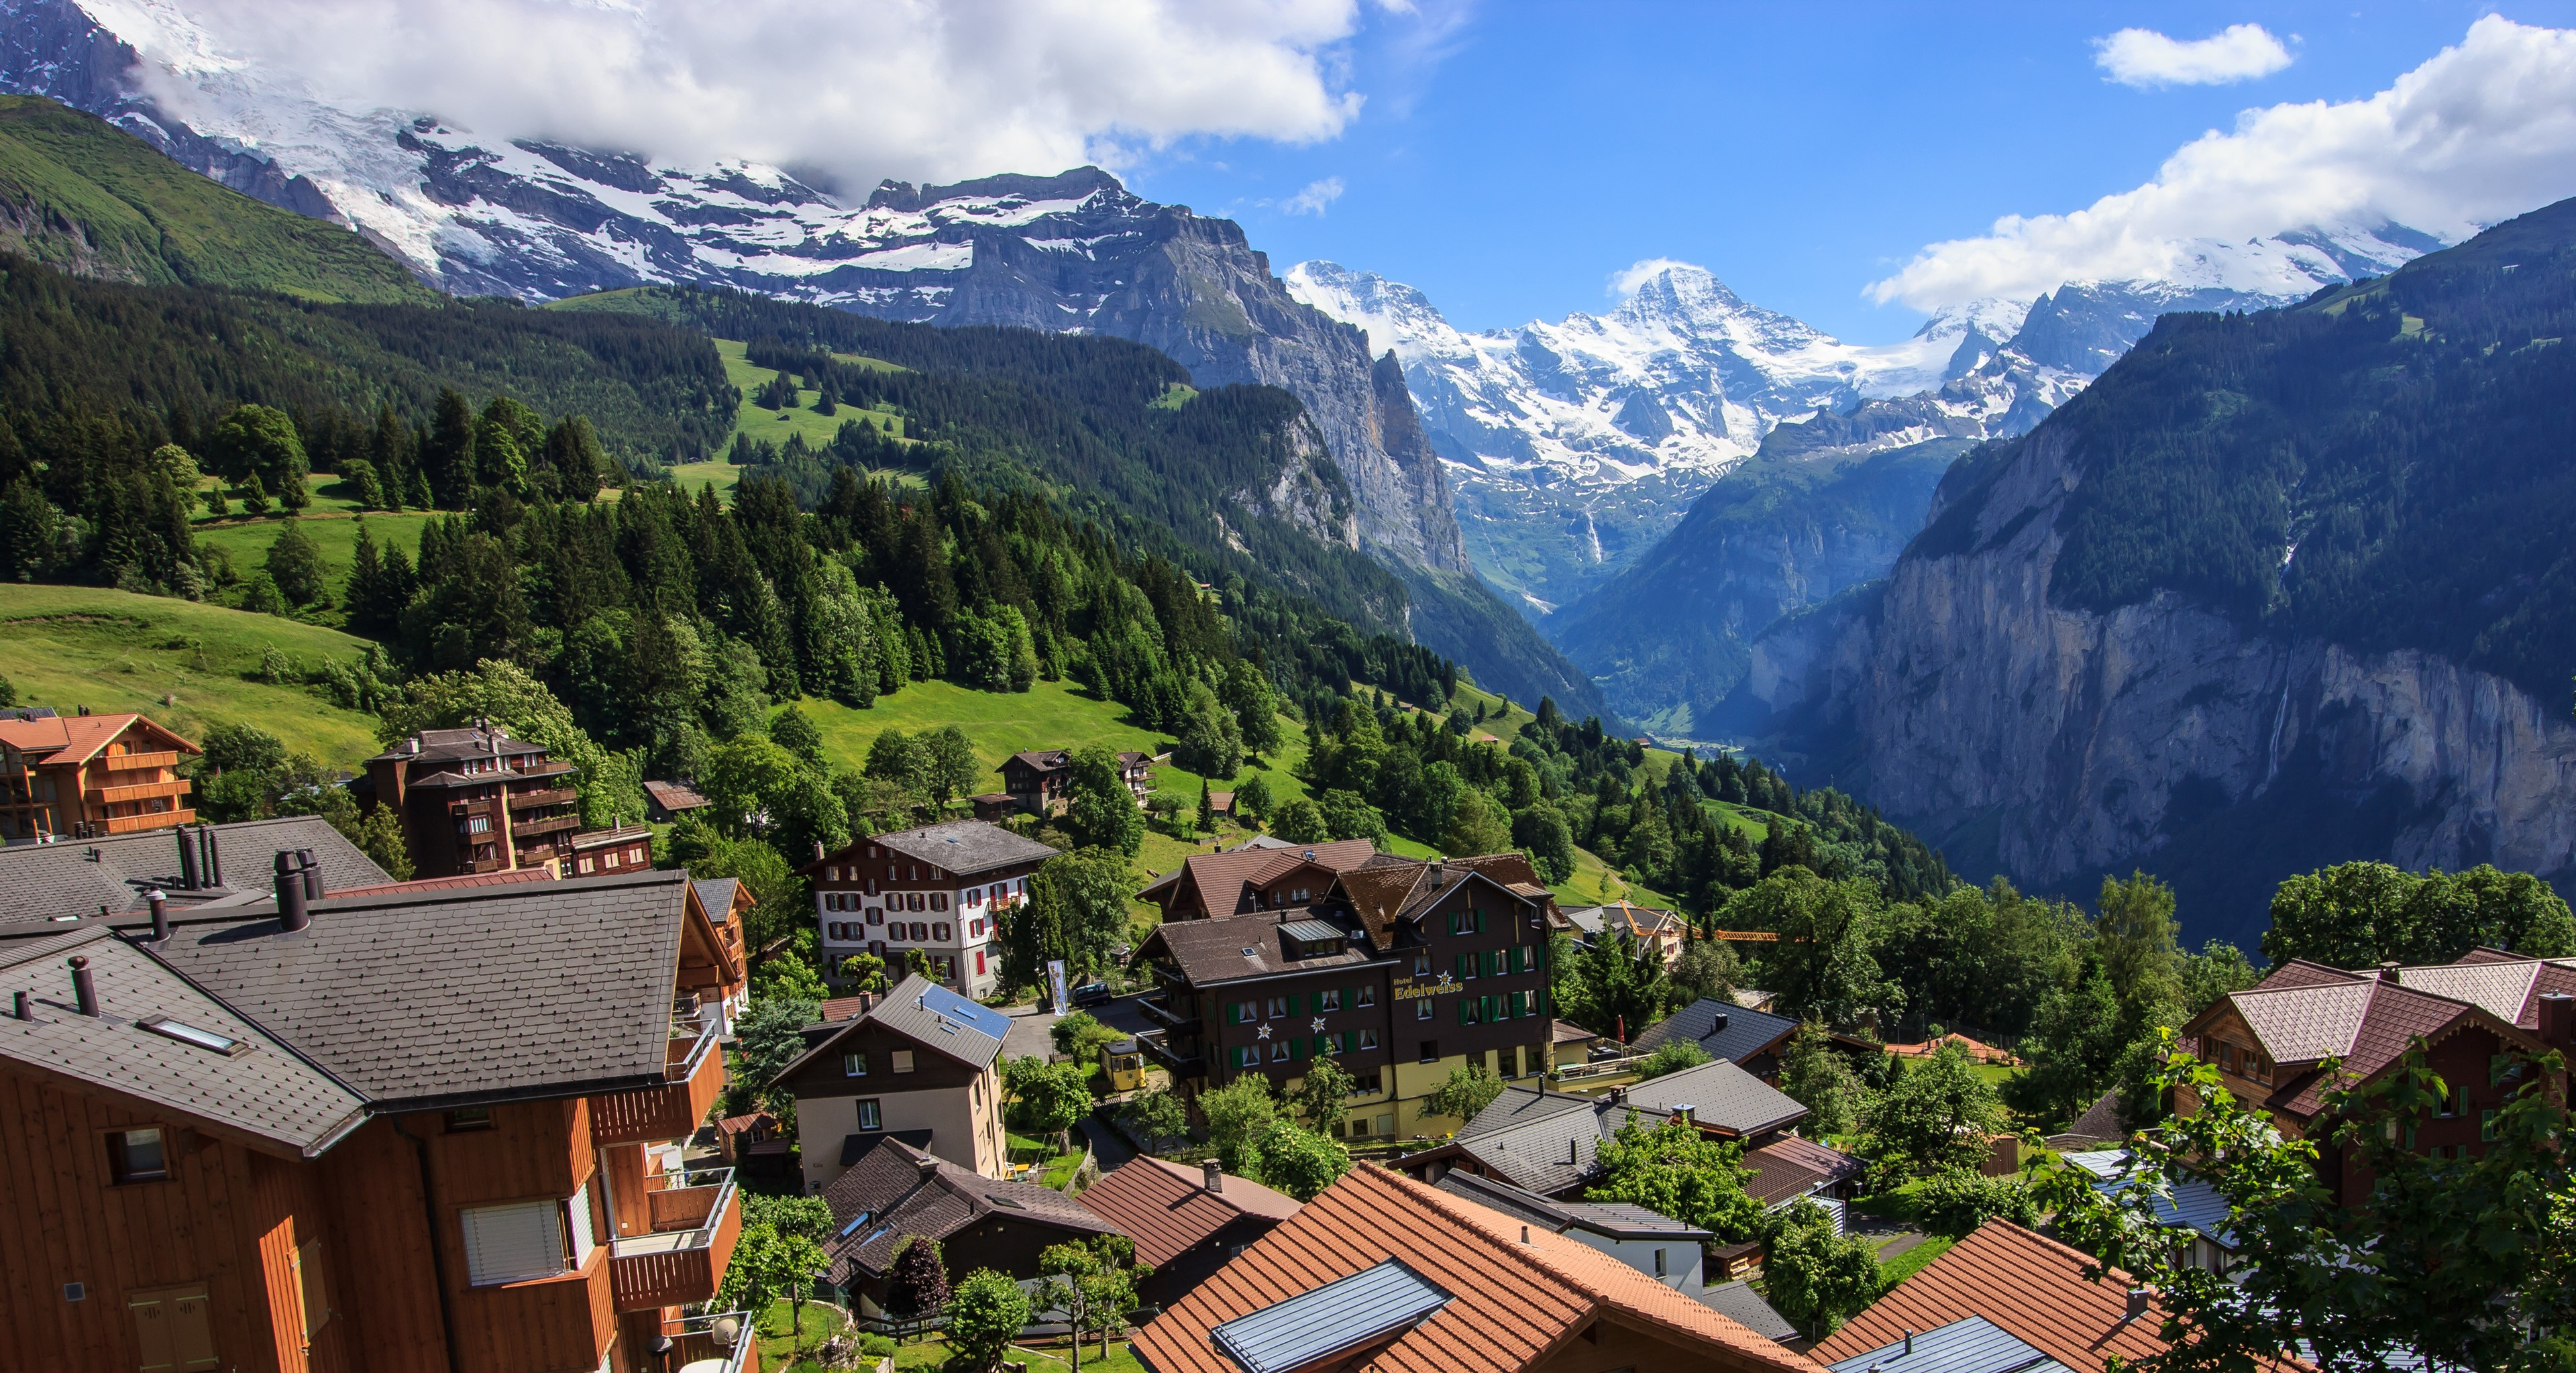 View of Jungfrau and the Lauterbrunnen Valley